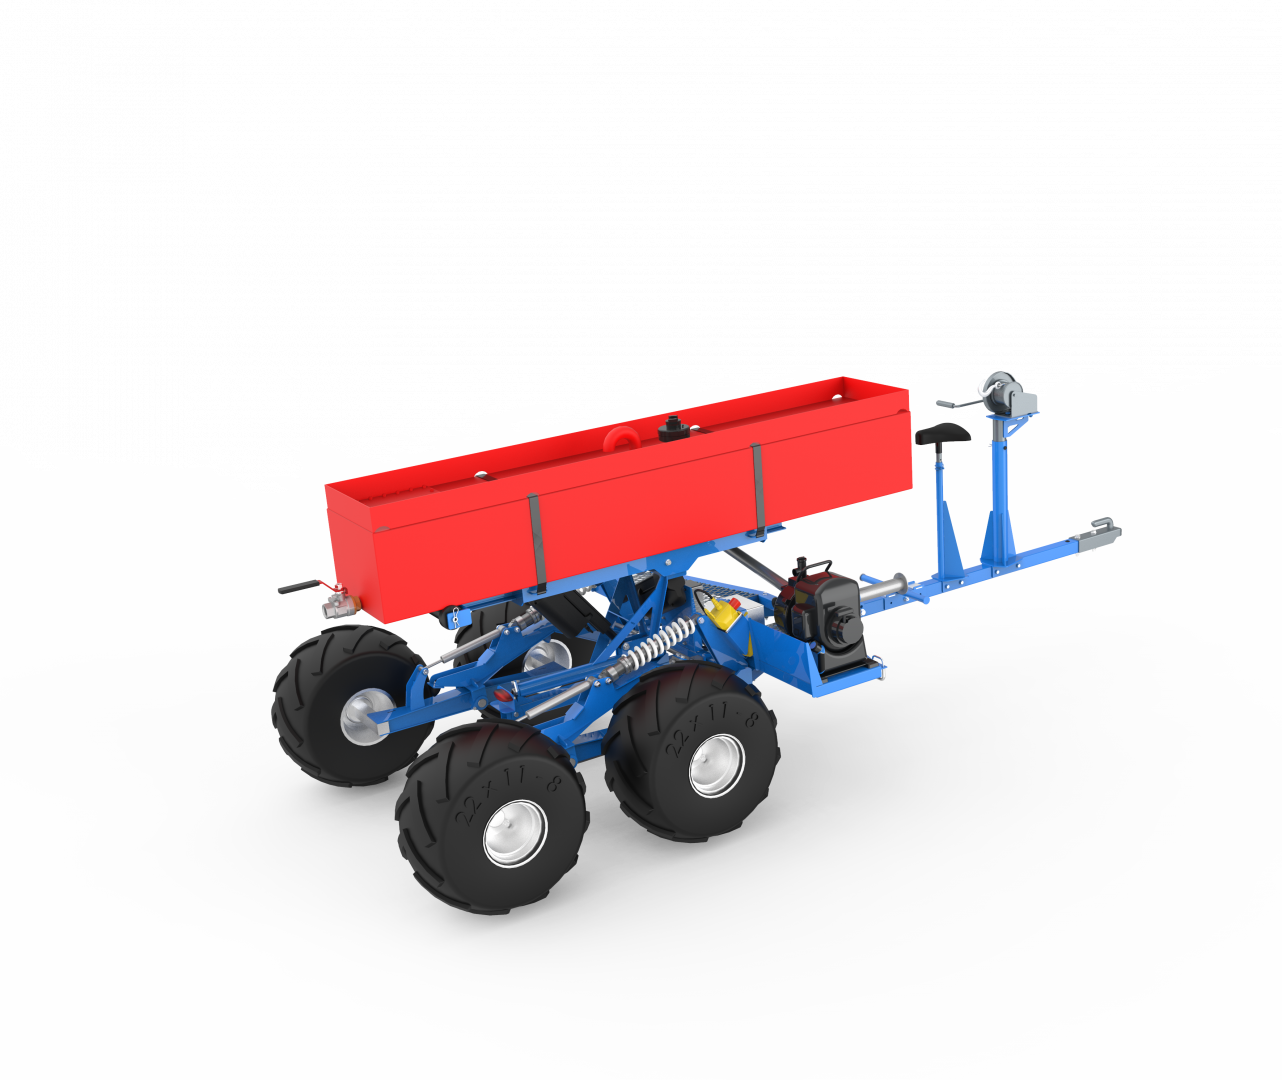 Self leveling rescue vehicle With 200 L water tank to put down small fires in rough terrain